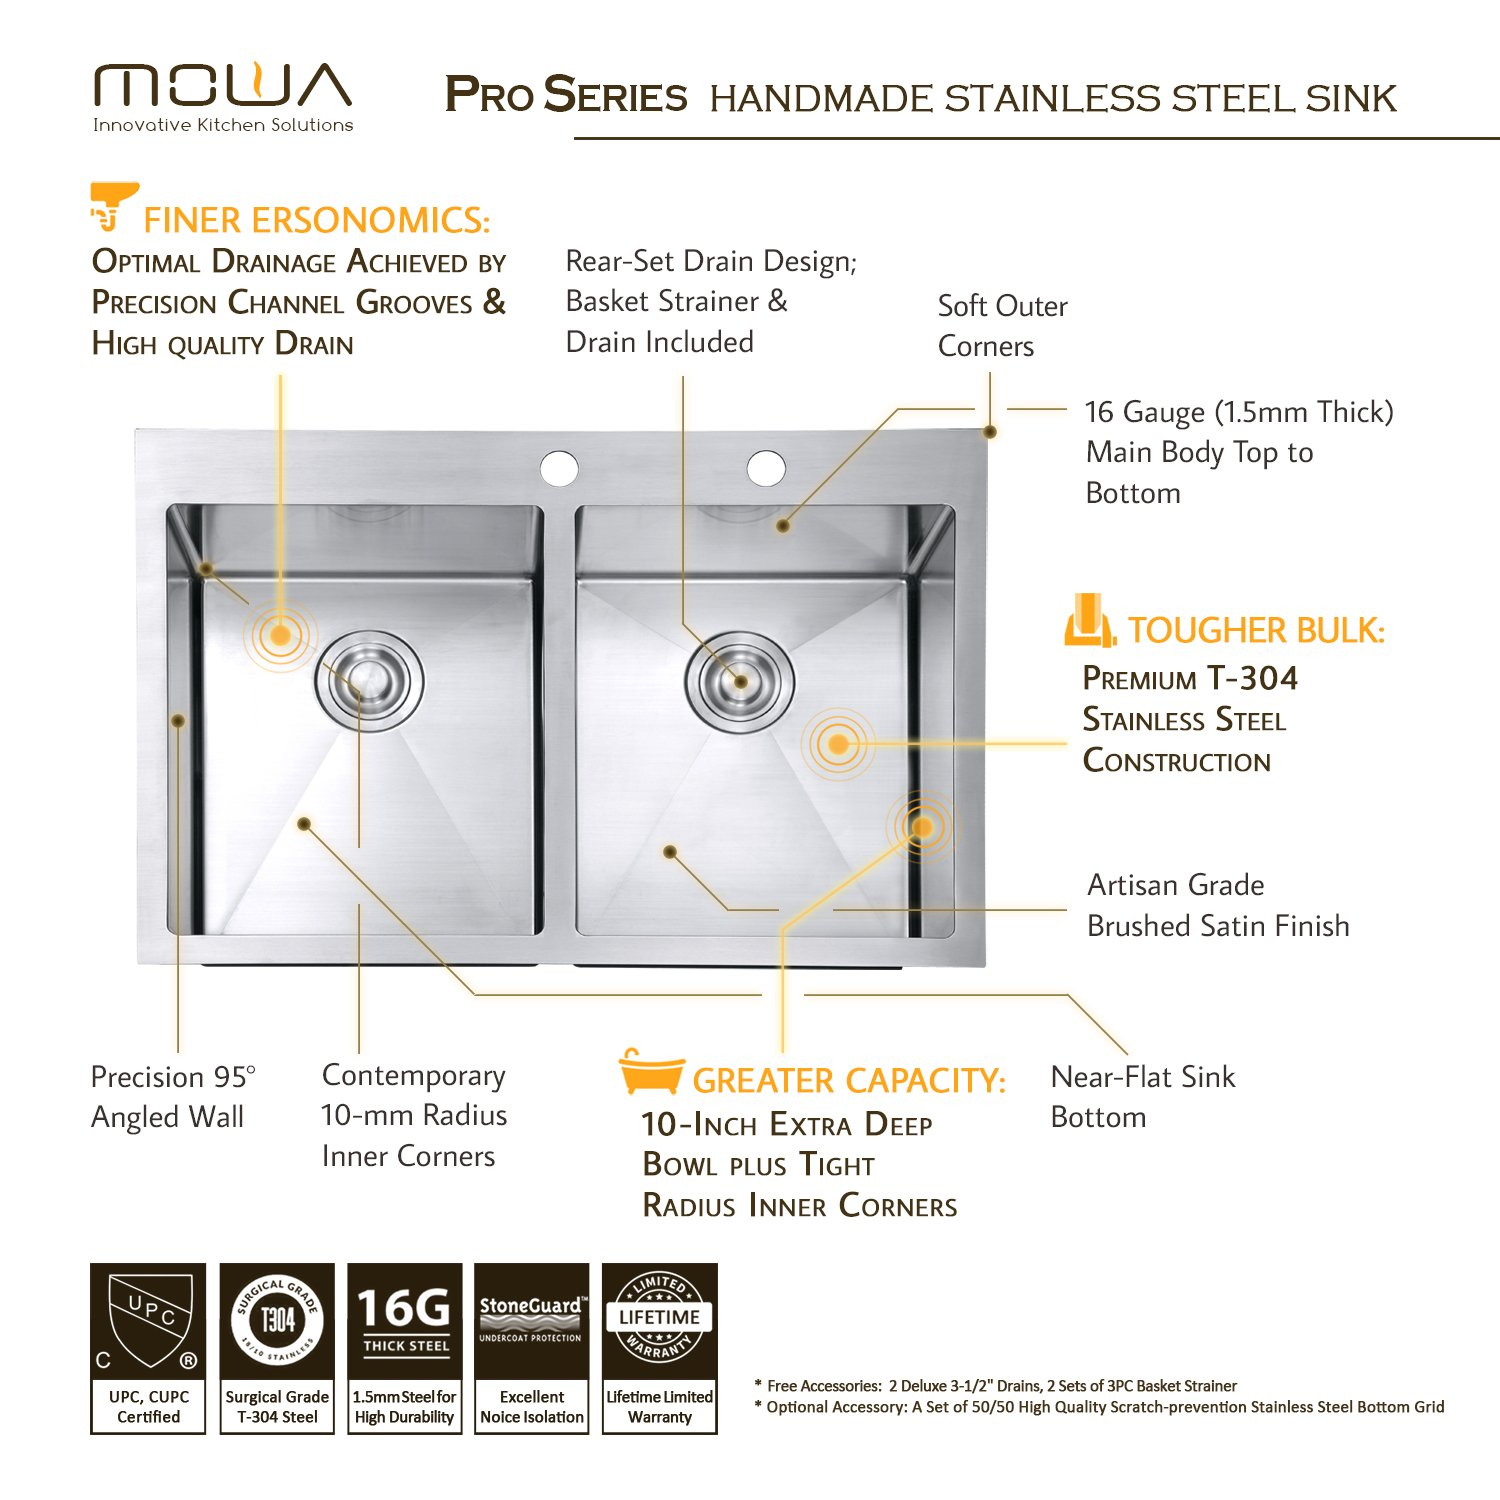 MOWA HTD33DE Upgraded Perfect Drainage Handmade 33'' 16 Gauge Stainless Steel Topmount 50/50 Double Bowl Kitchen Sink, Modern Tight-Radius Style, Commercial Deep Basin, w/Sink Bottom Grids & Strainers by MOWA (Image #4)